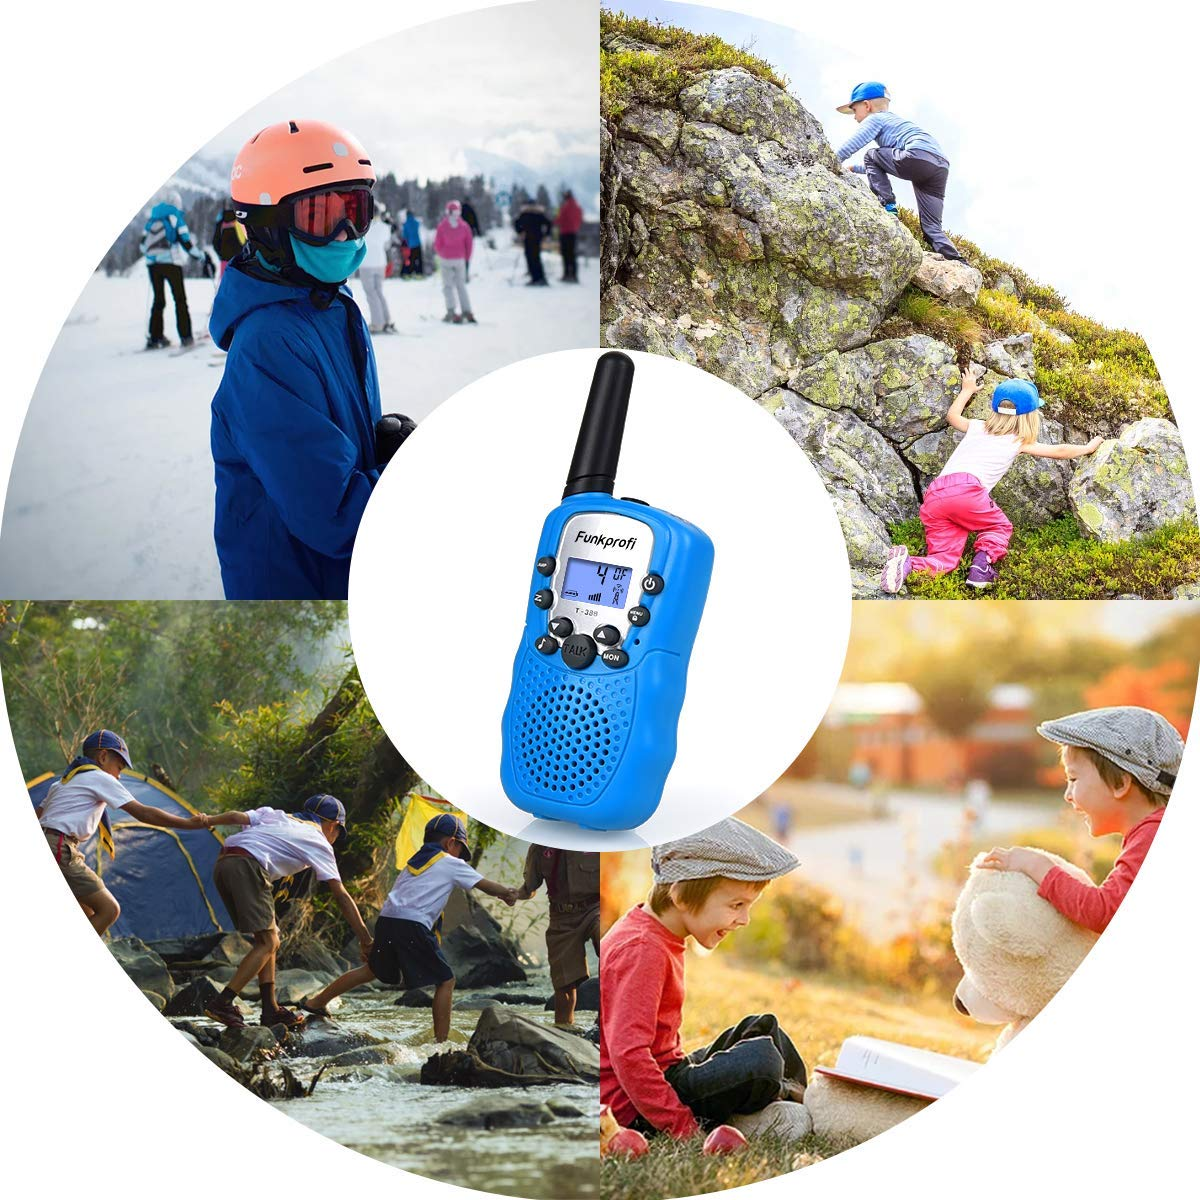 Funkprofi 3 Pack Walkie Talkies for Kids 22 Channel Uhf FRS/GMRS 2 Way Radio, Toy Gifts for Boys and Girls Birthday, Outdoor Adventure, Camping, Hiking by Funkprofi (Image #6)